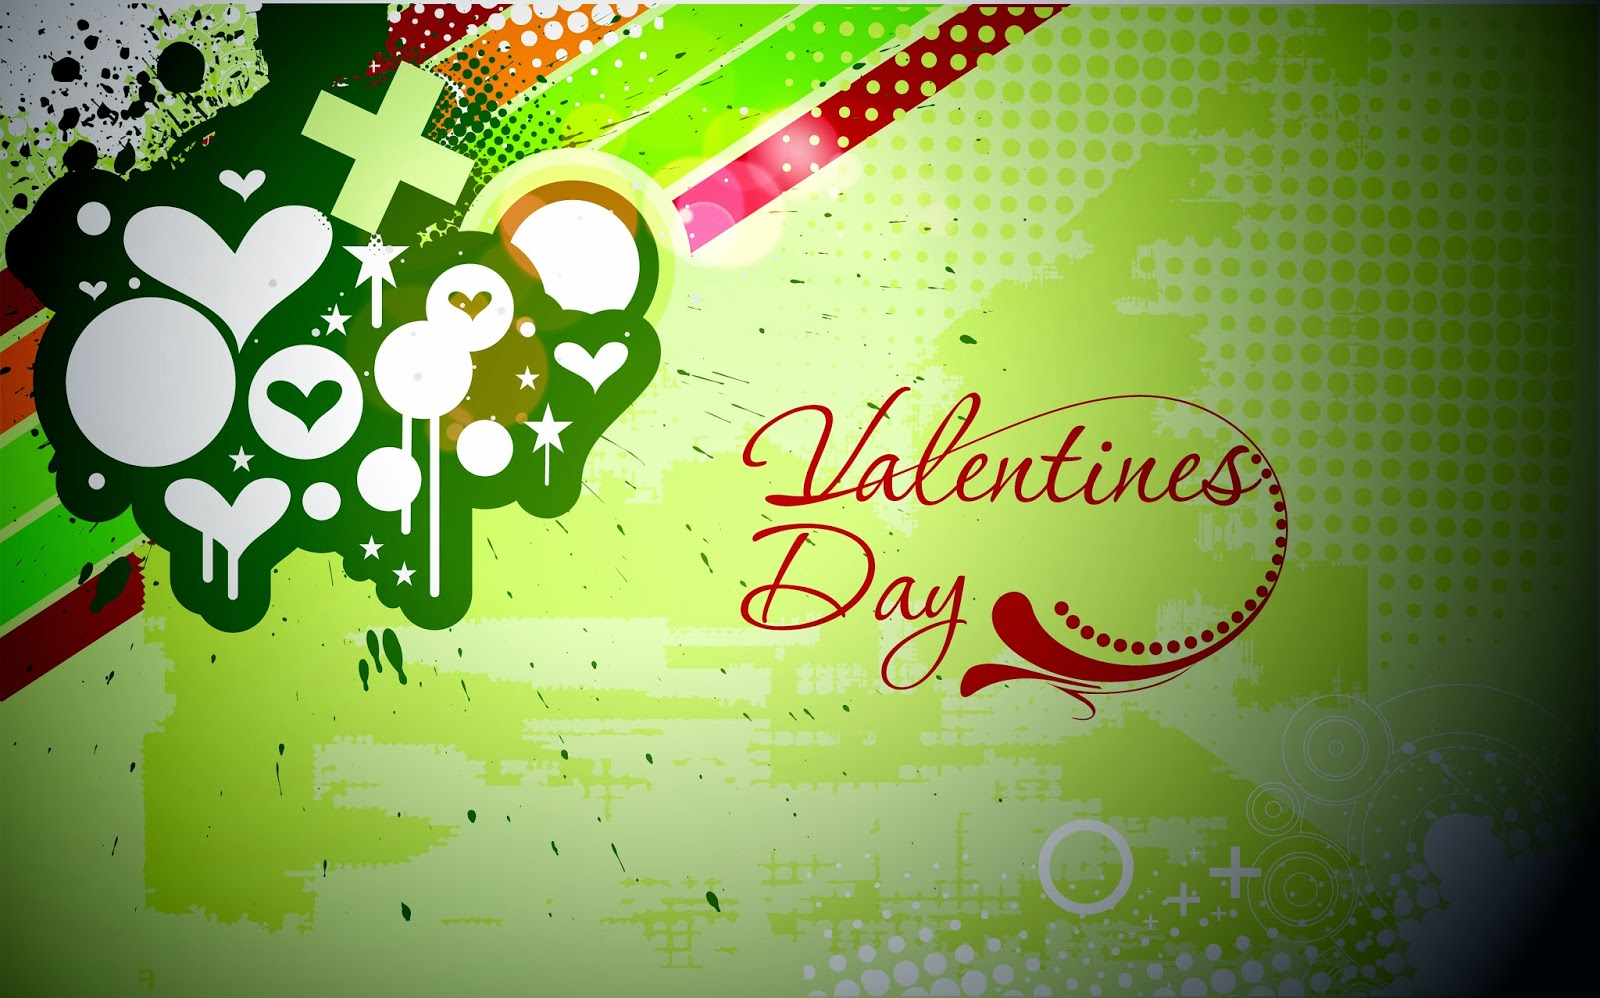 valentines-dayvector-design-graphic-image-PSD-template.jpg